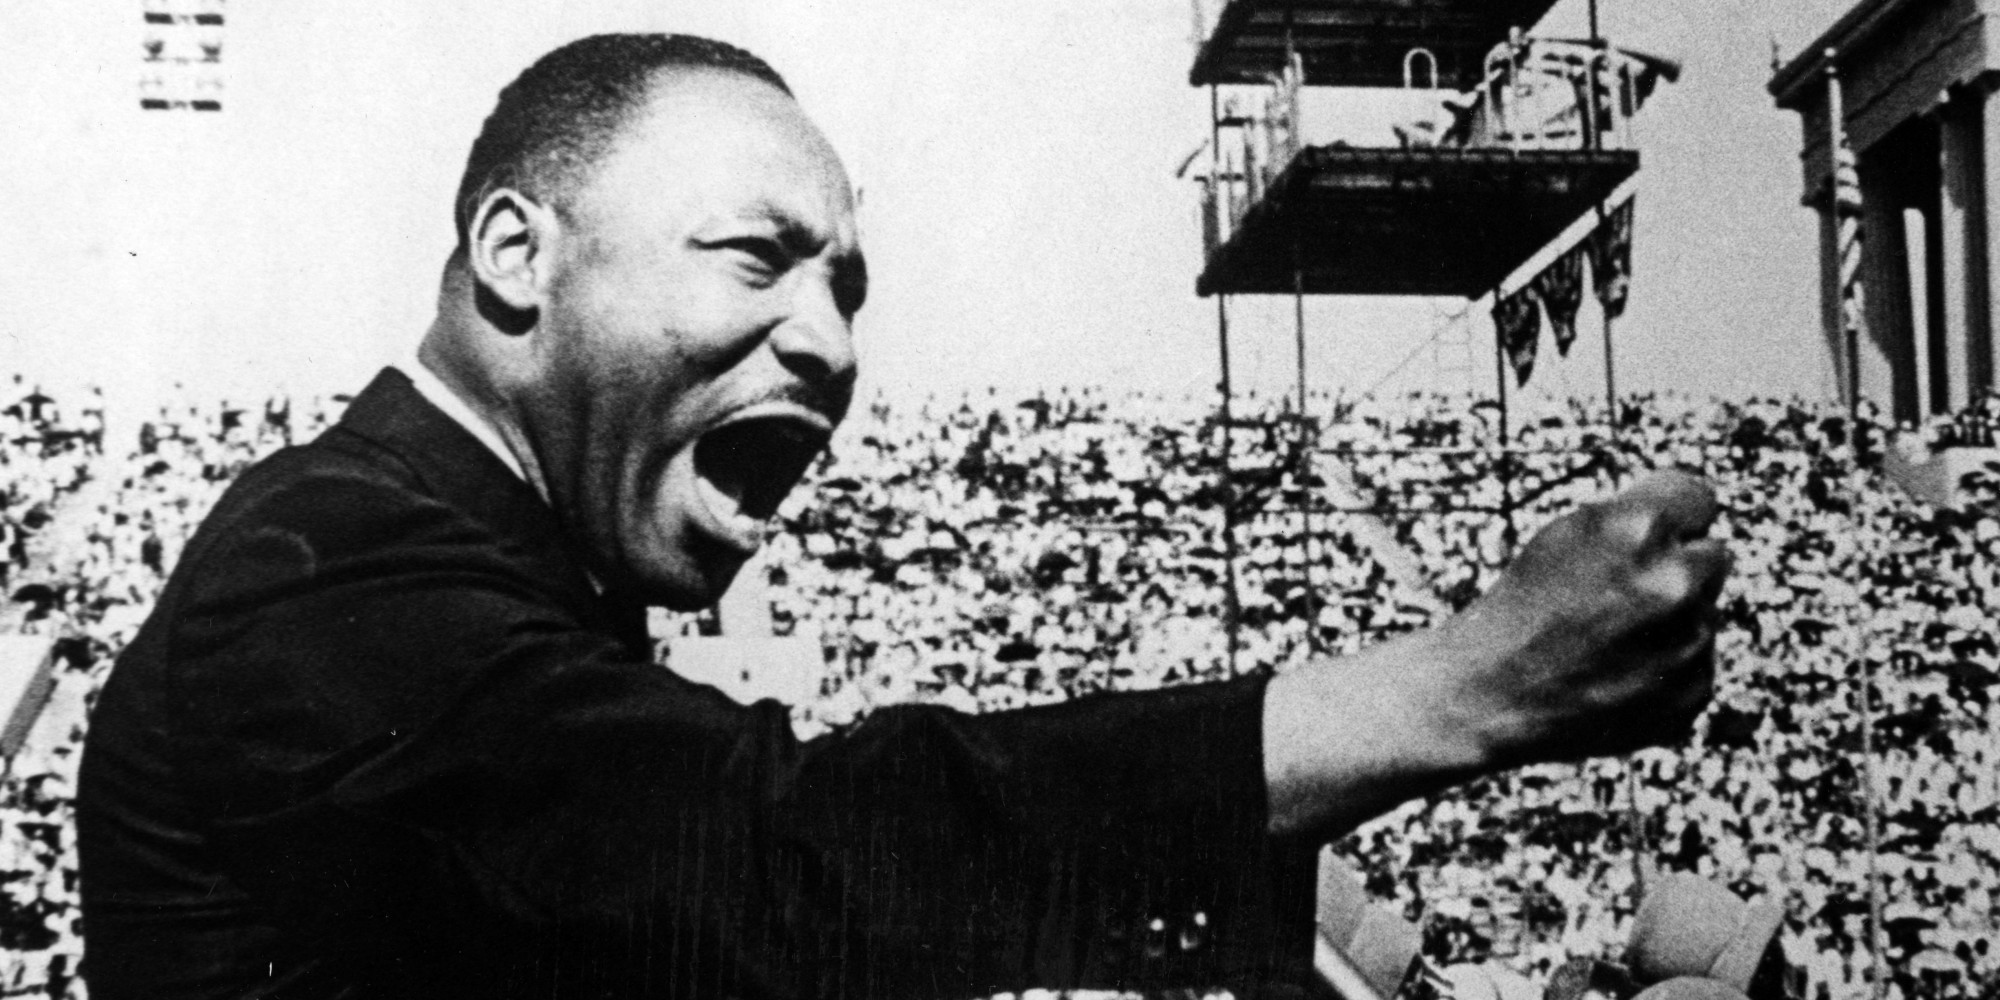 martin luther king jr inspirations from the black community the martin luther king jr inspirations from the black community the huffington post